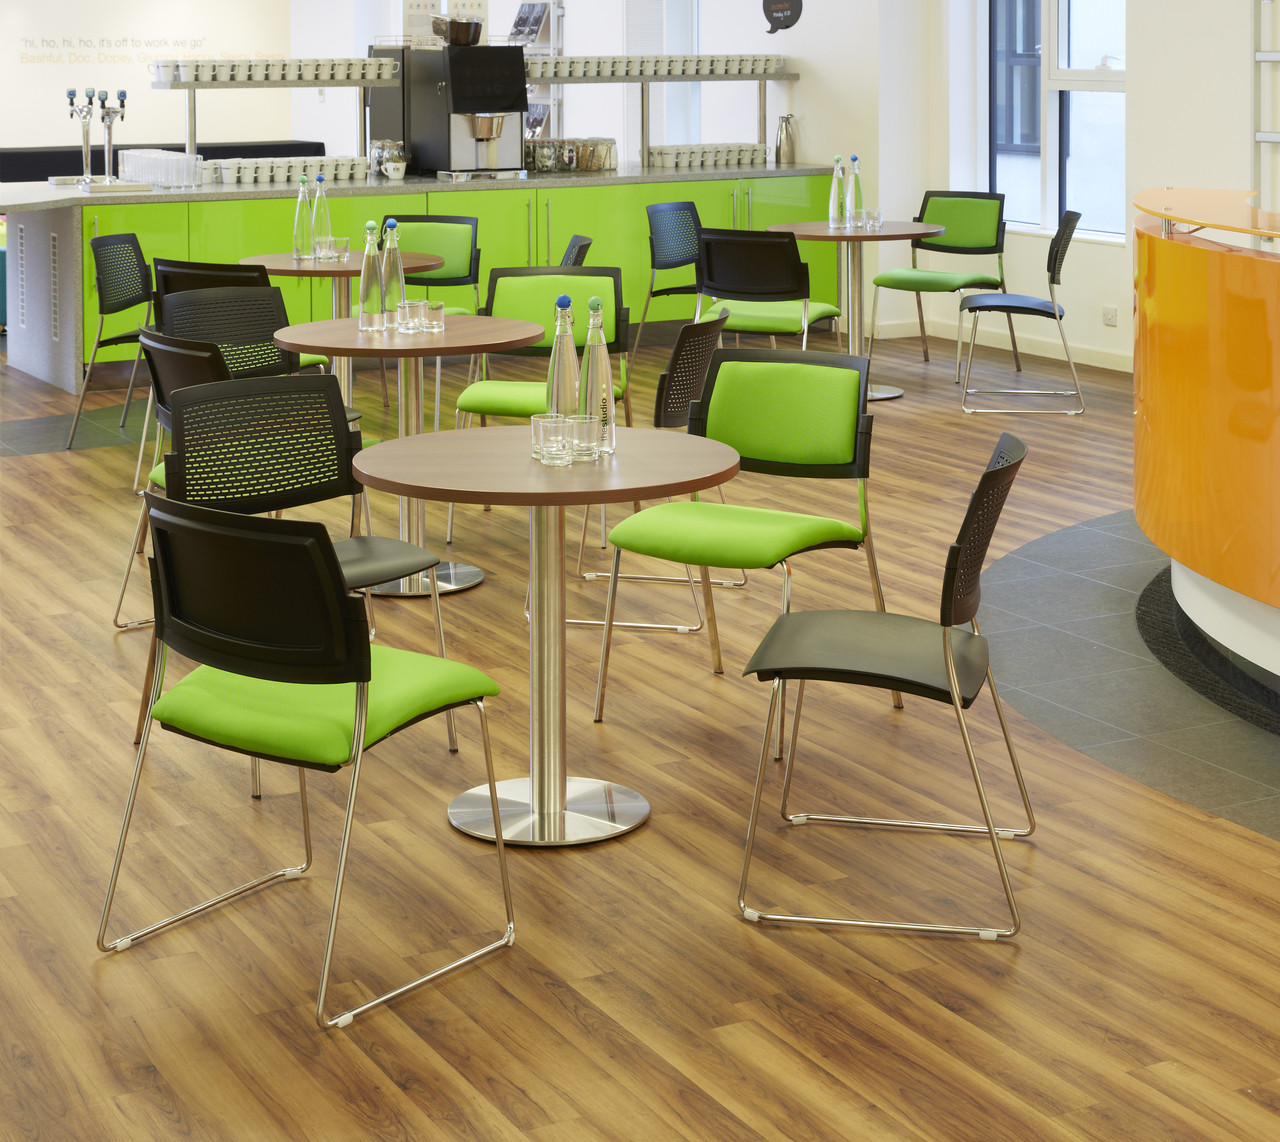 Satsu Upholstered 4-Leg - Meeting & Visitor Chairs - MSS04